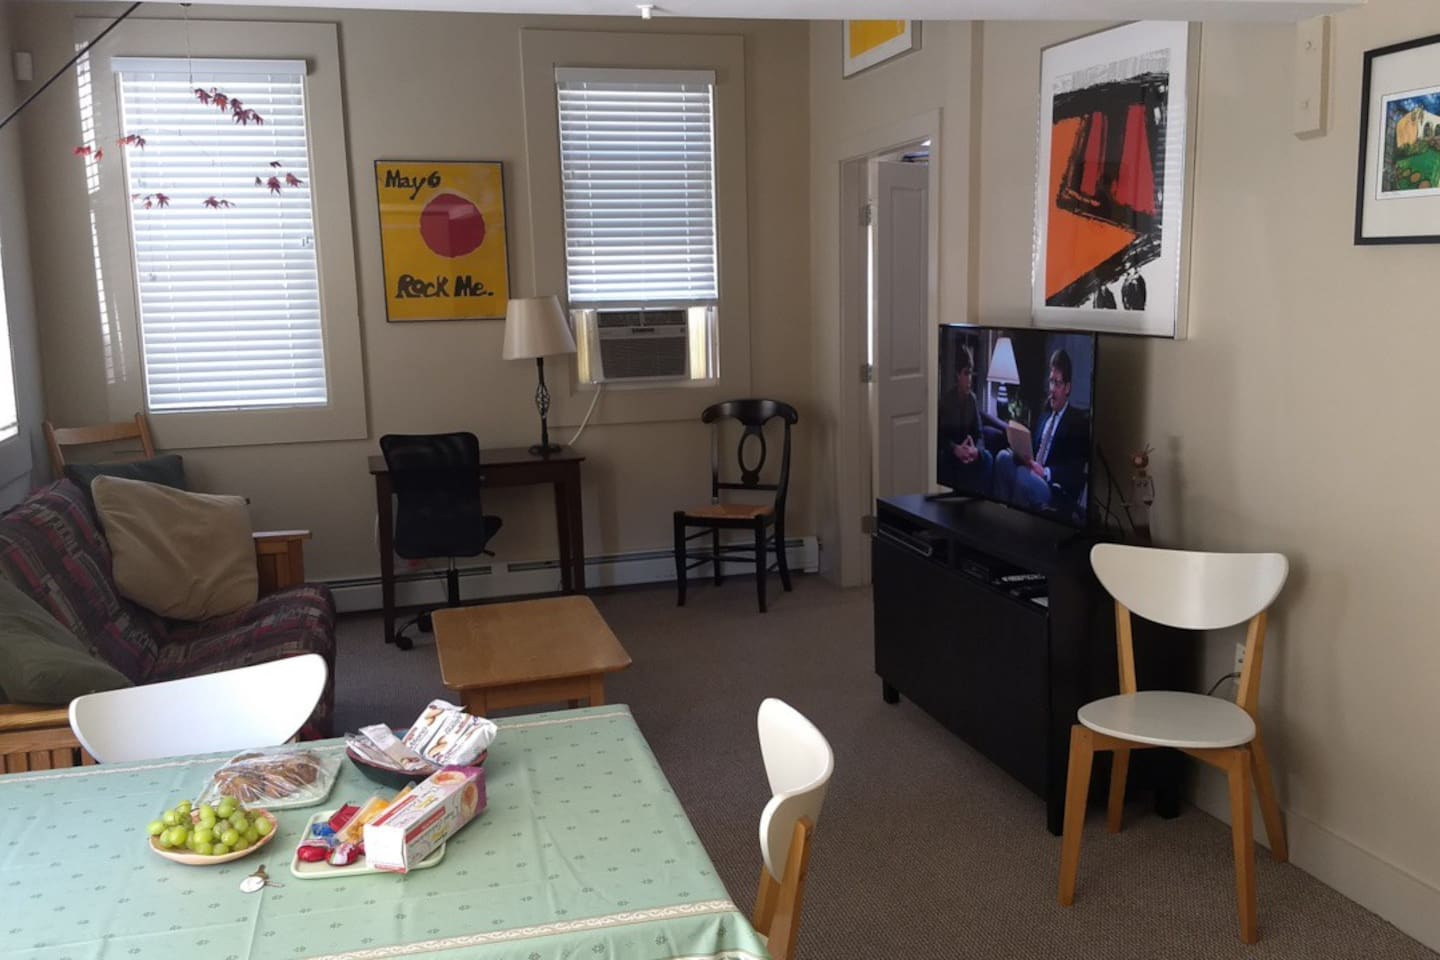 The Living Room – with a futon sofa-bed for two guests... a small desk for laptop use, a table for 4 in the kitchen area and lots of Xfinity TV and hundreds of DVDs from all over the world.